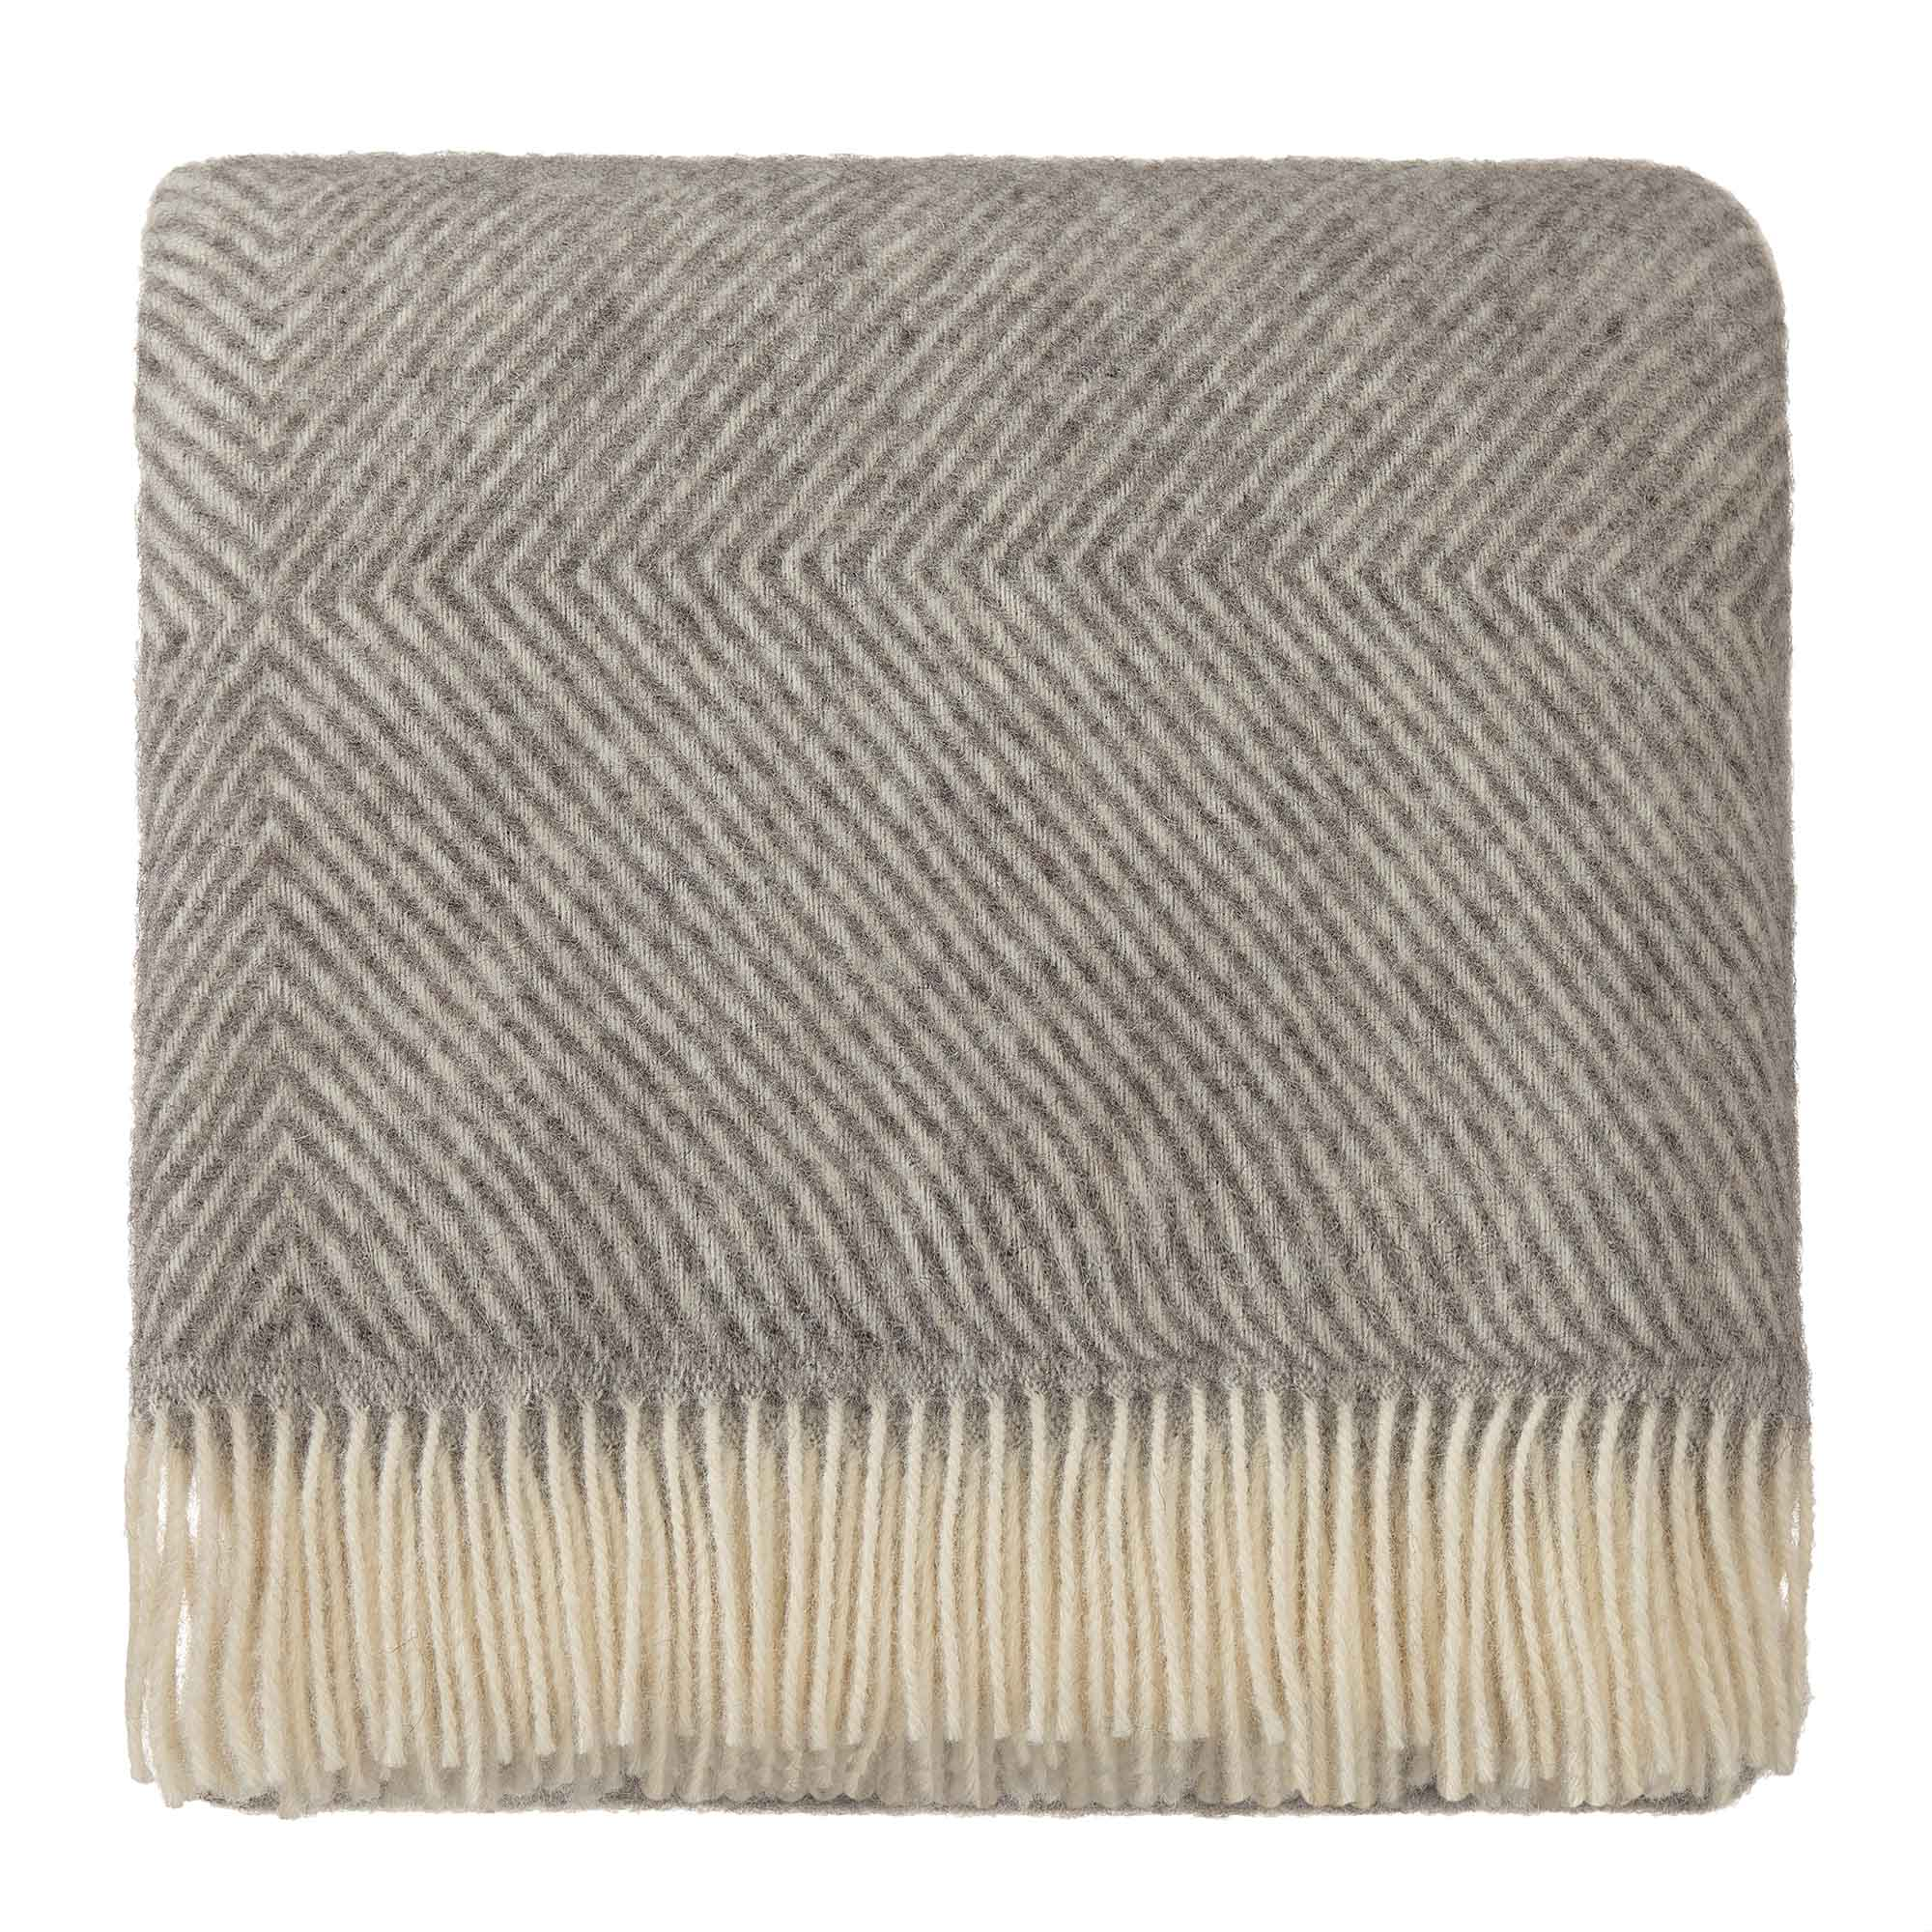 Gotland blanket, grey & cream, 100% new wool